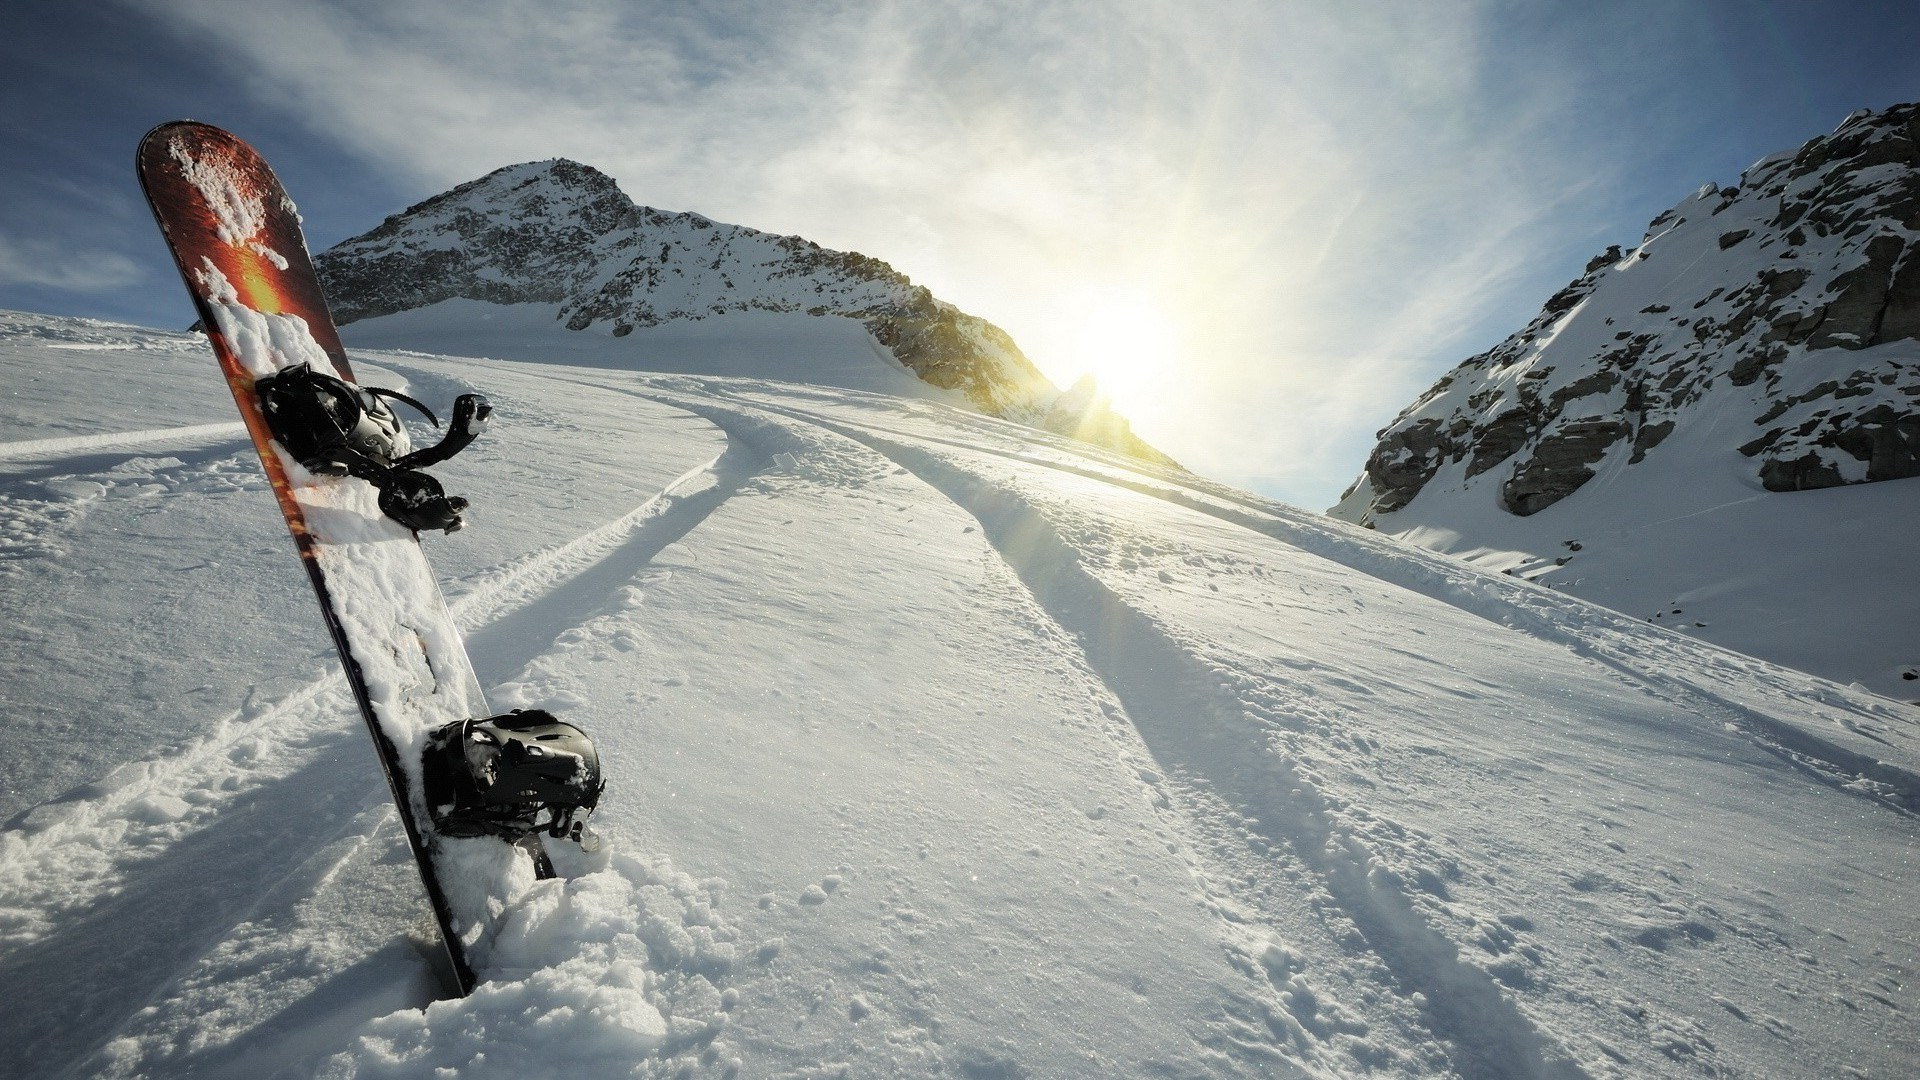 Awesome-snowboarding-picture-1920-x-1080-kB-wallpaper-wpc5802418